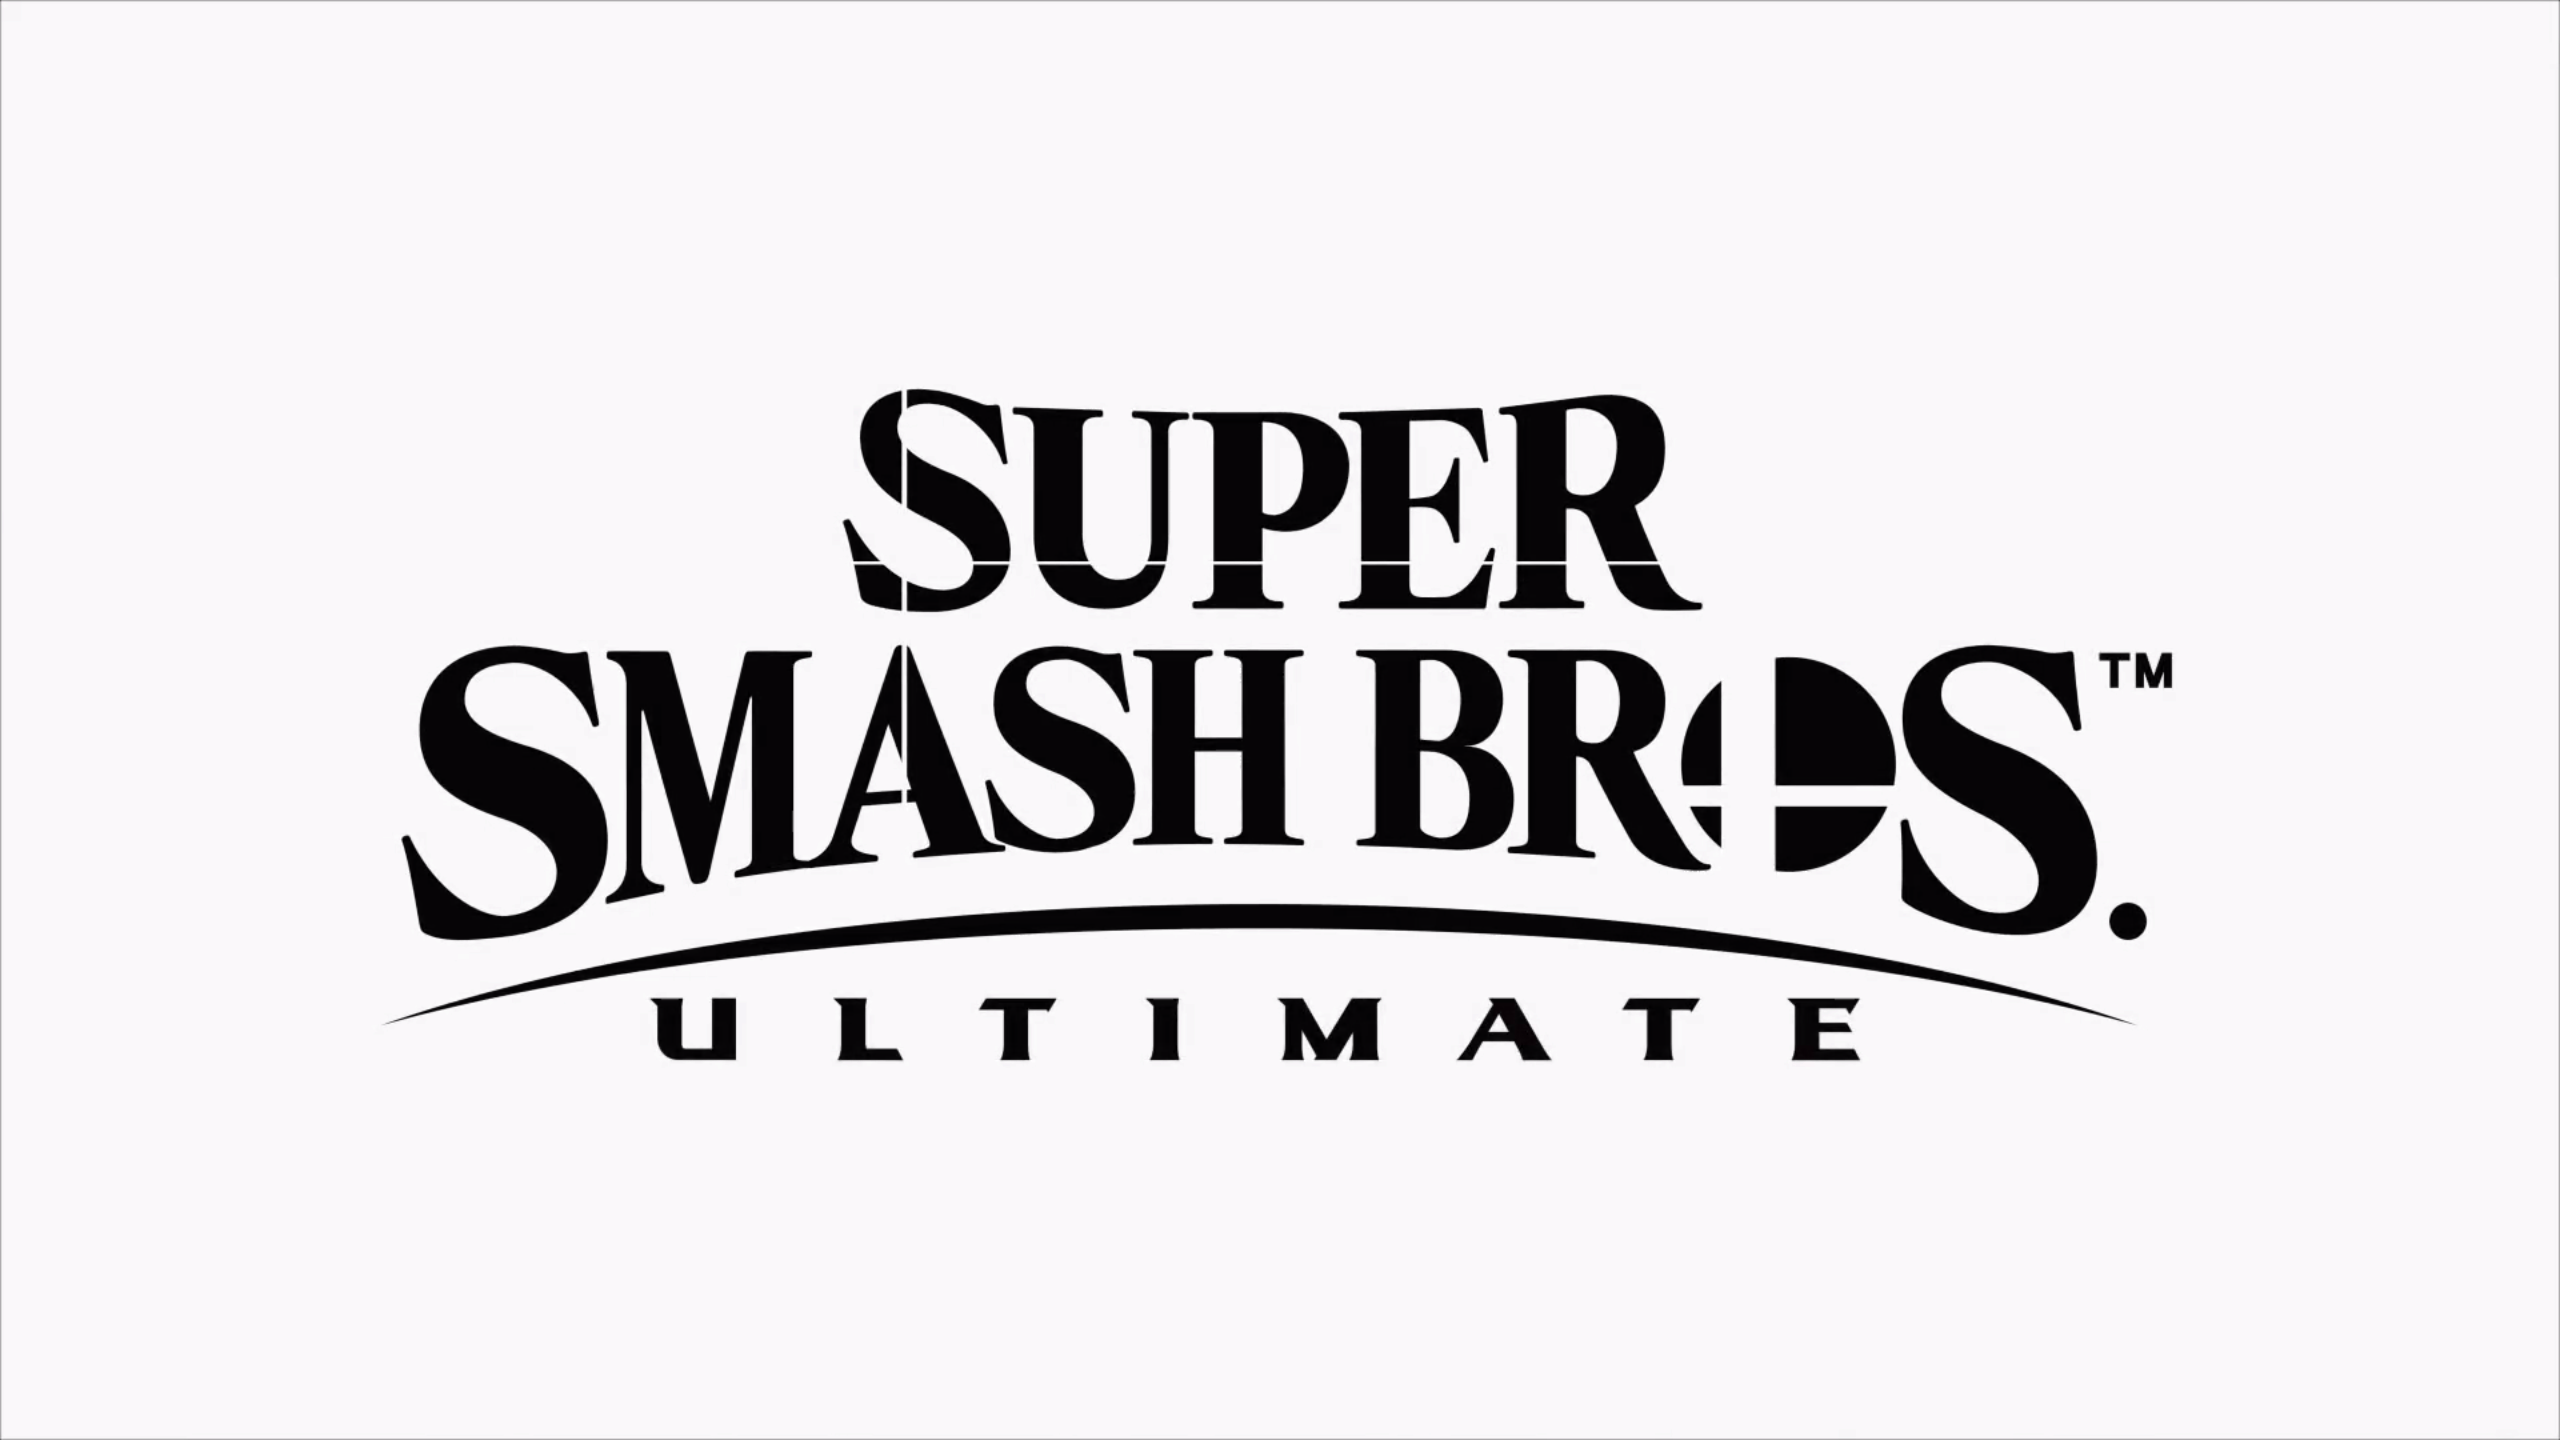 Nintendo Announces New Super Smash Bros Ultimate Details